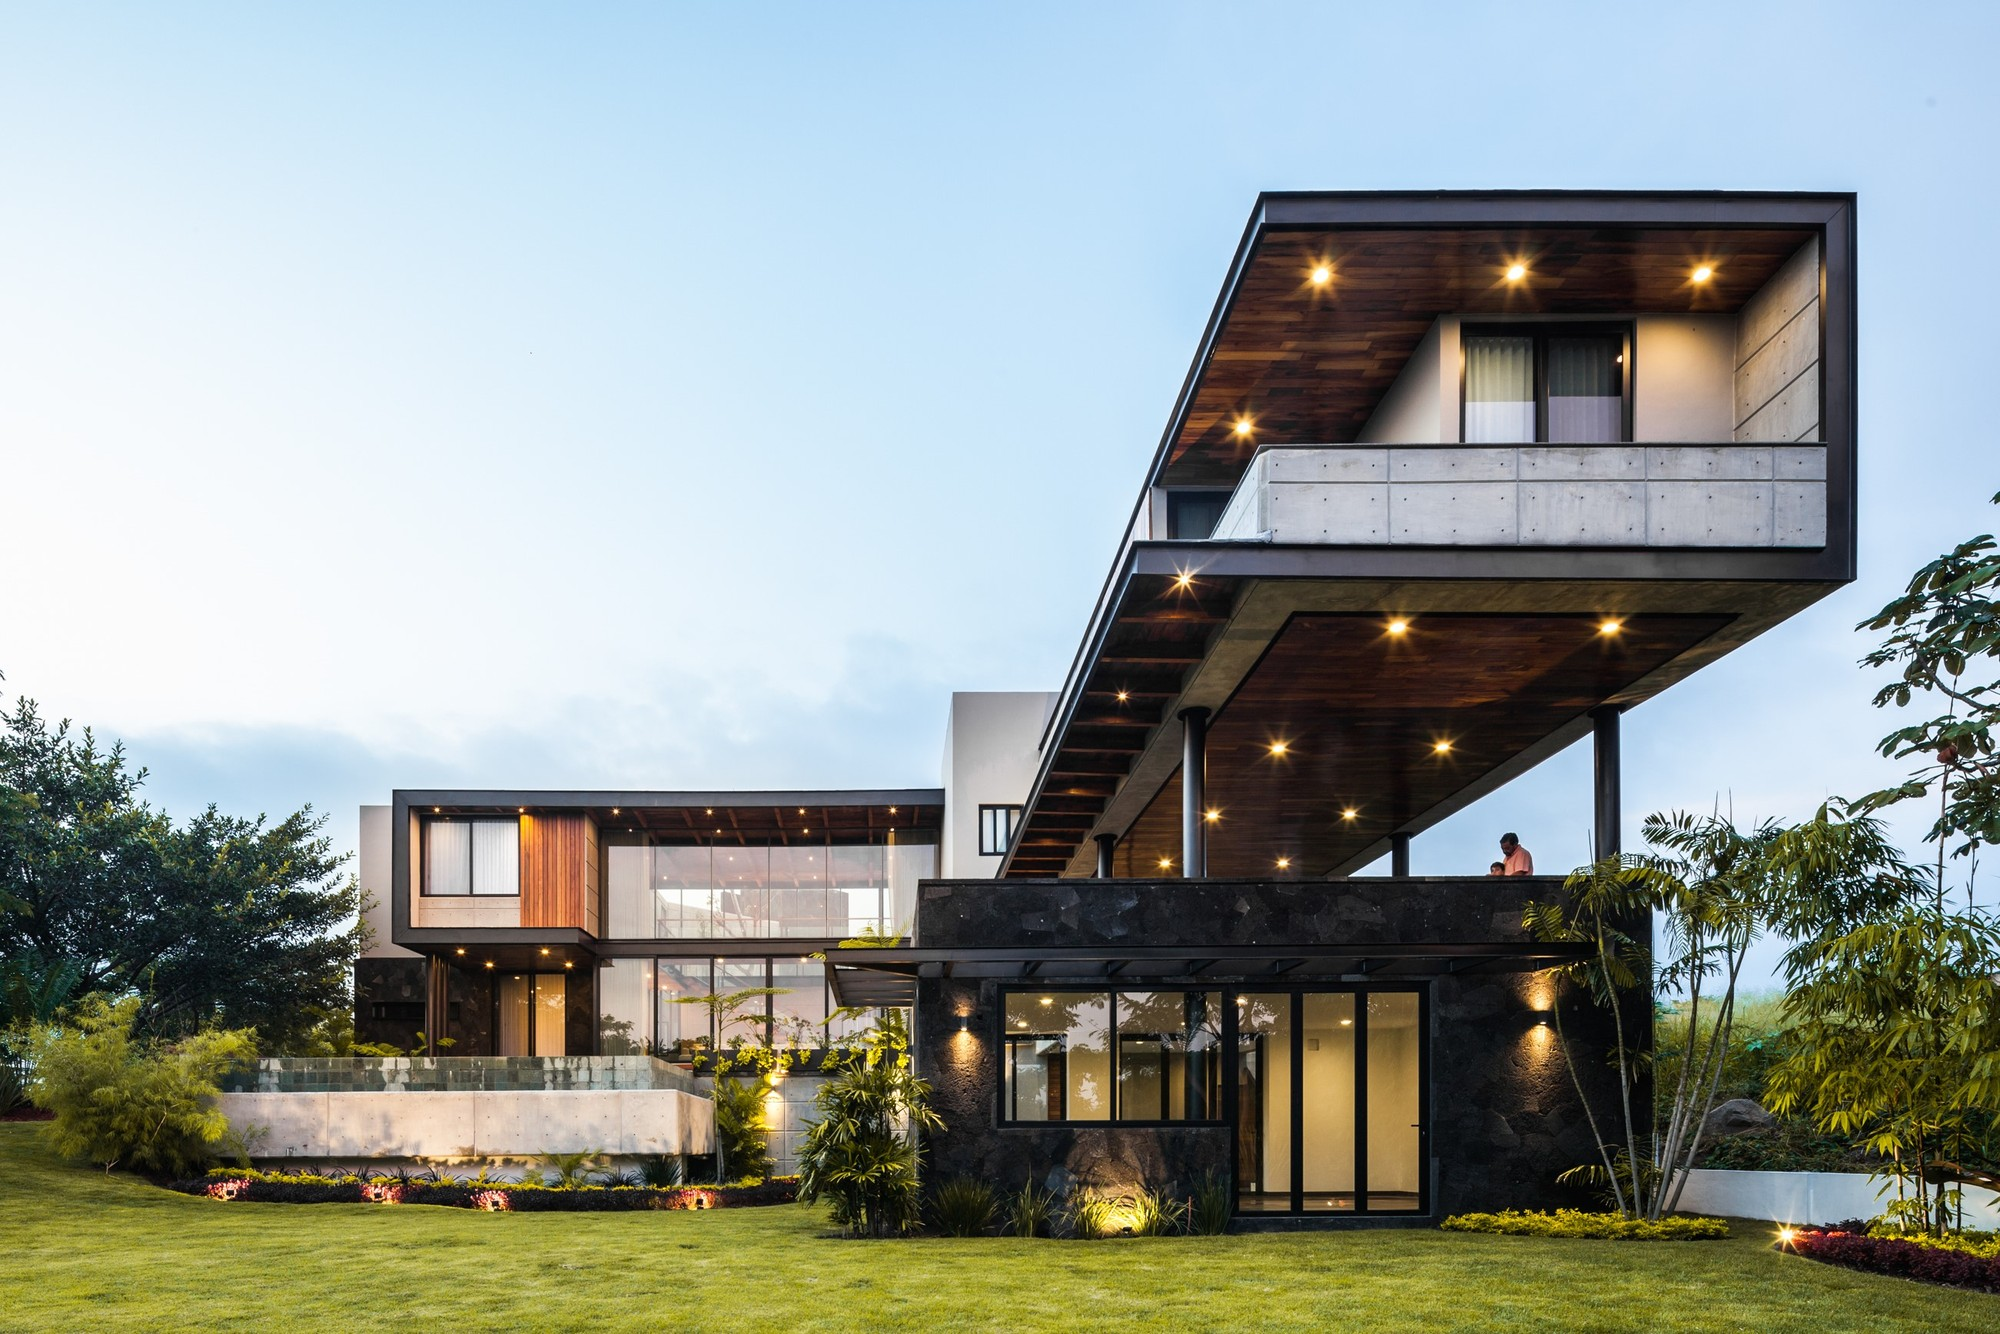 Gallery of Kaleth House / Di Frenna Arquitectos - 1